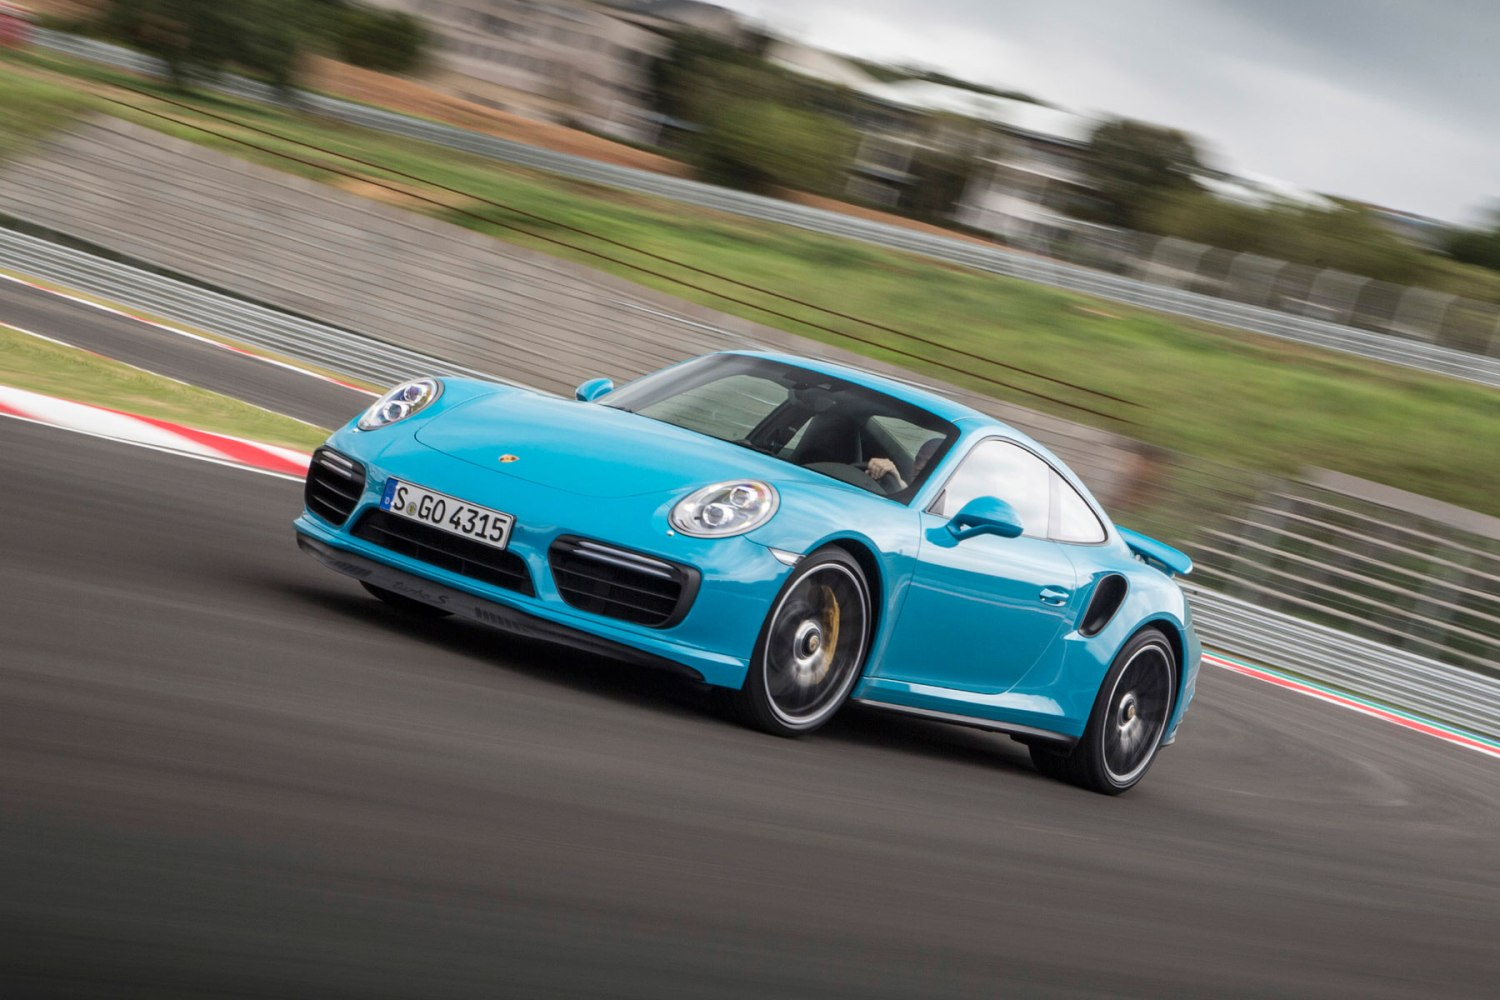 Porsche 911 Turbo S – 2.9 seconds